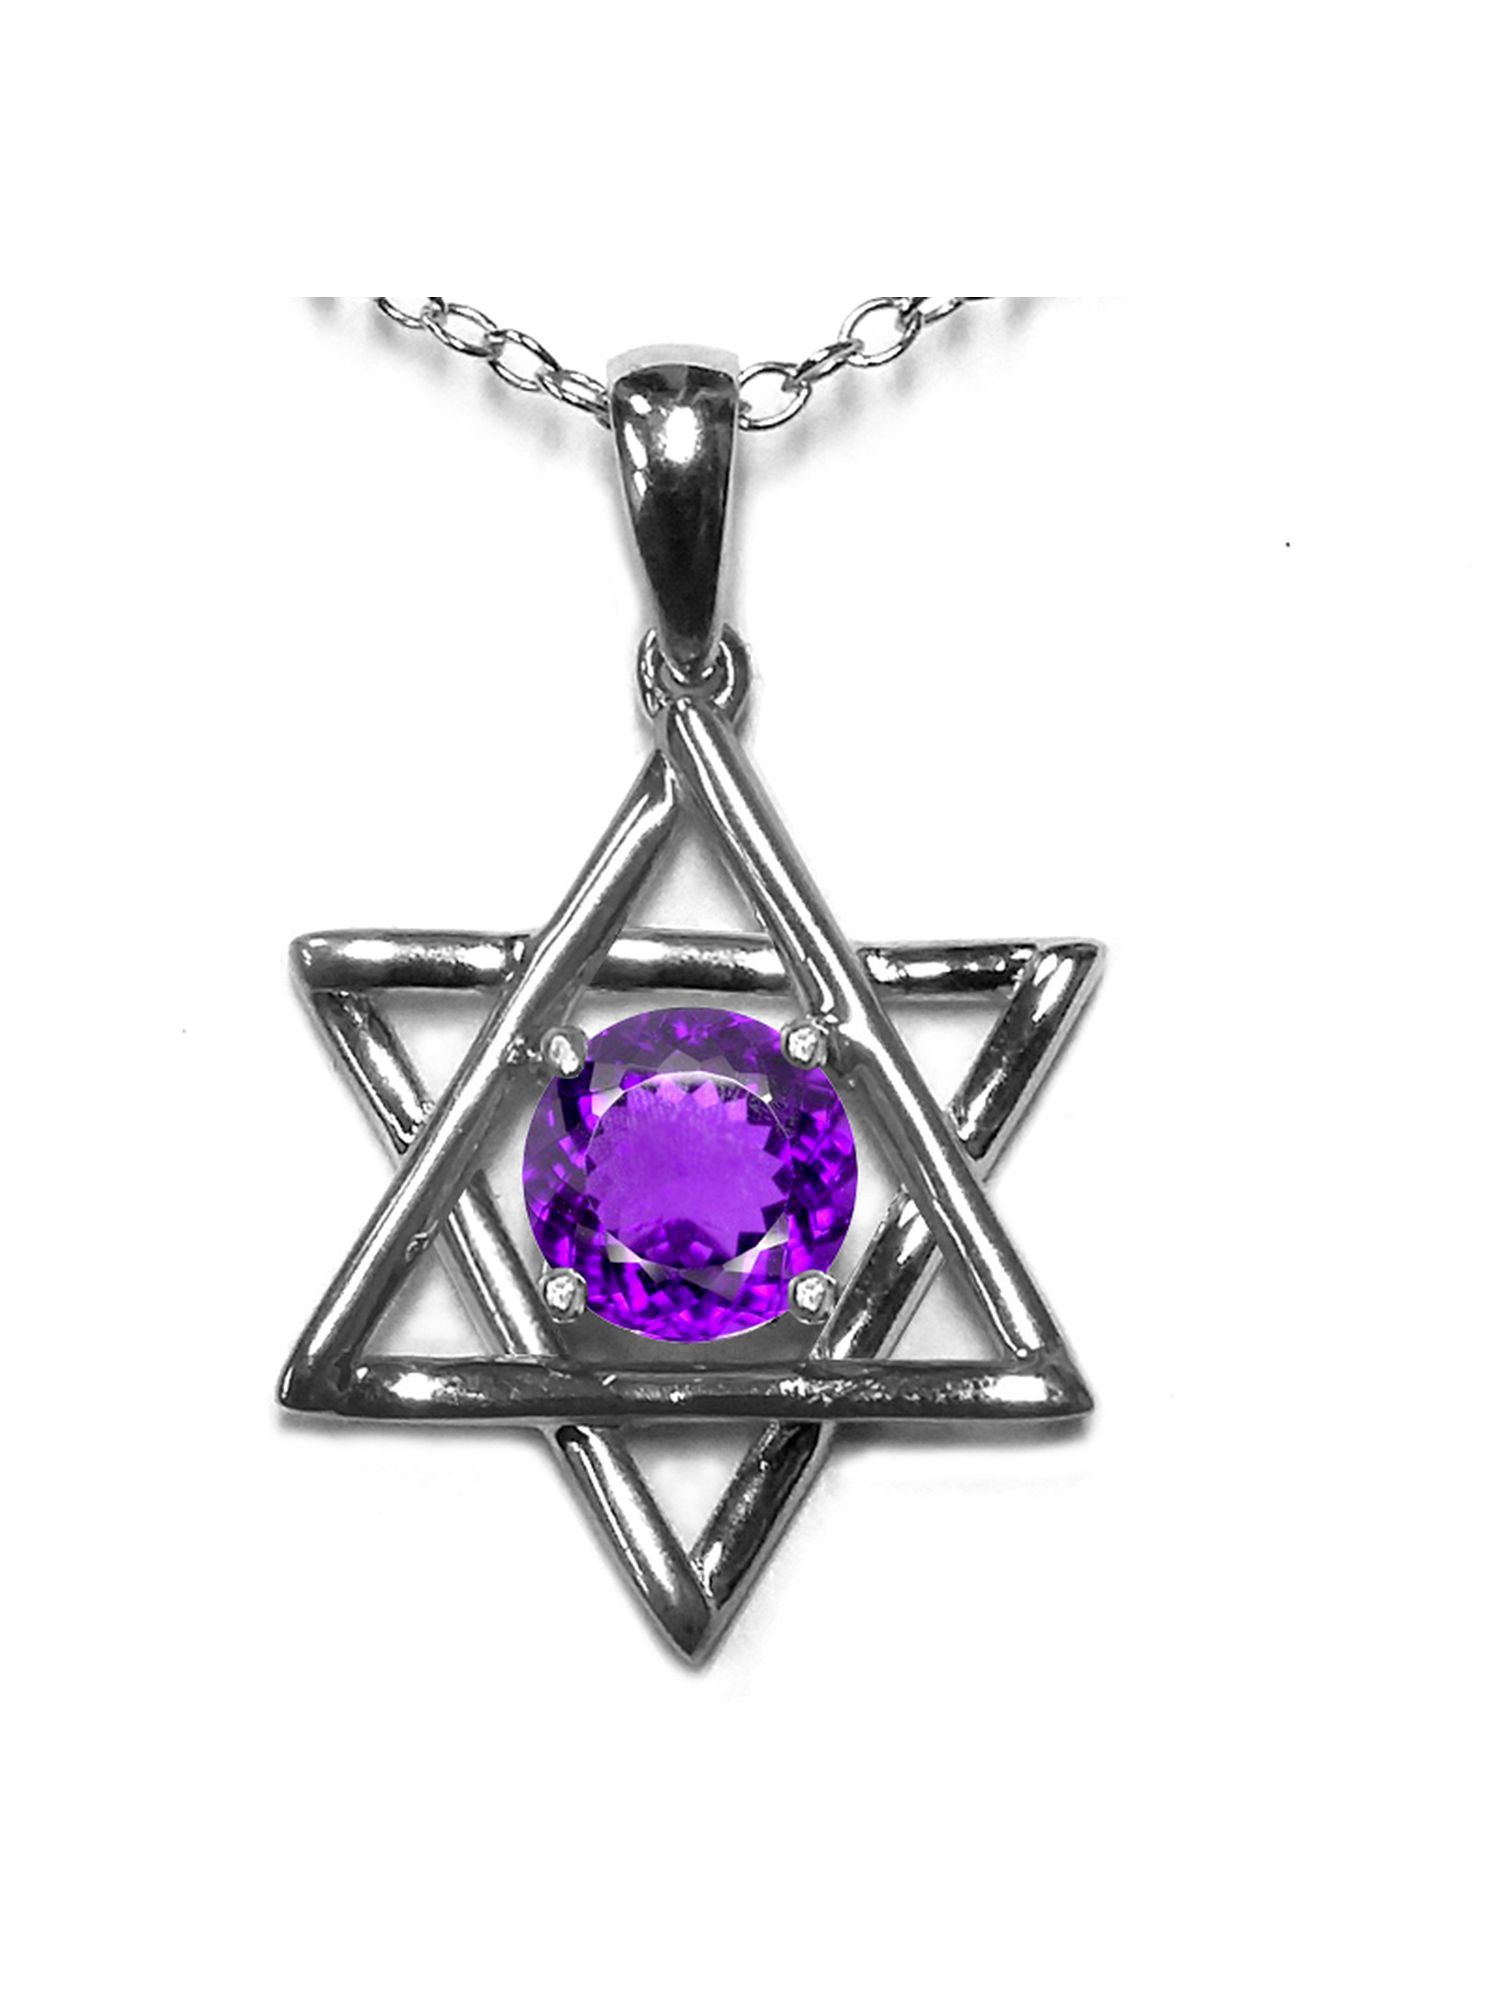 Star K Jewish Star of David Pendant Necklace with Round Genuine Amethyst in 10 kt White Gold by Star K